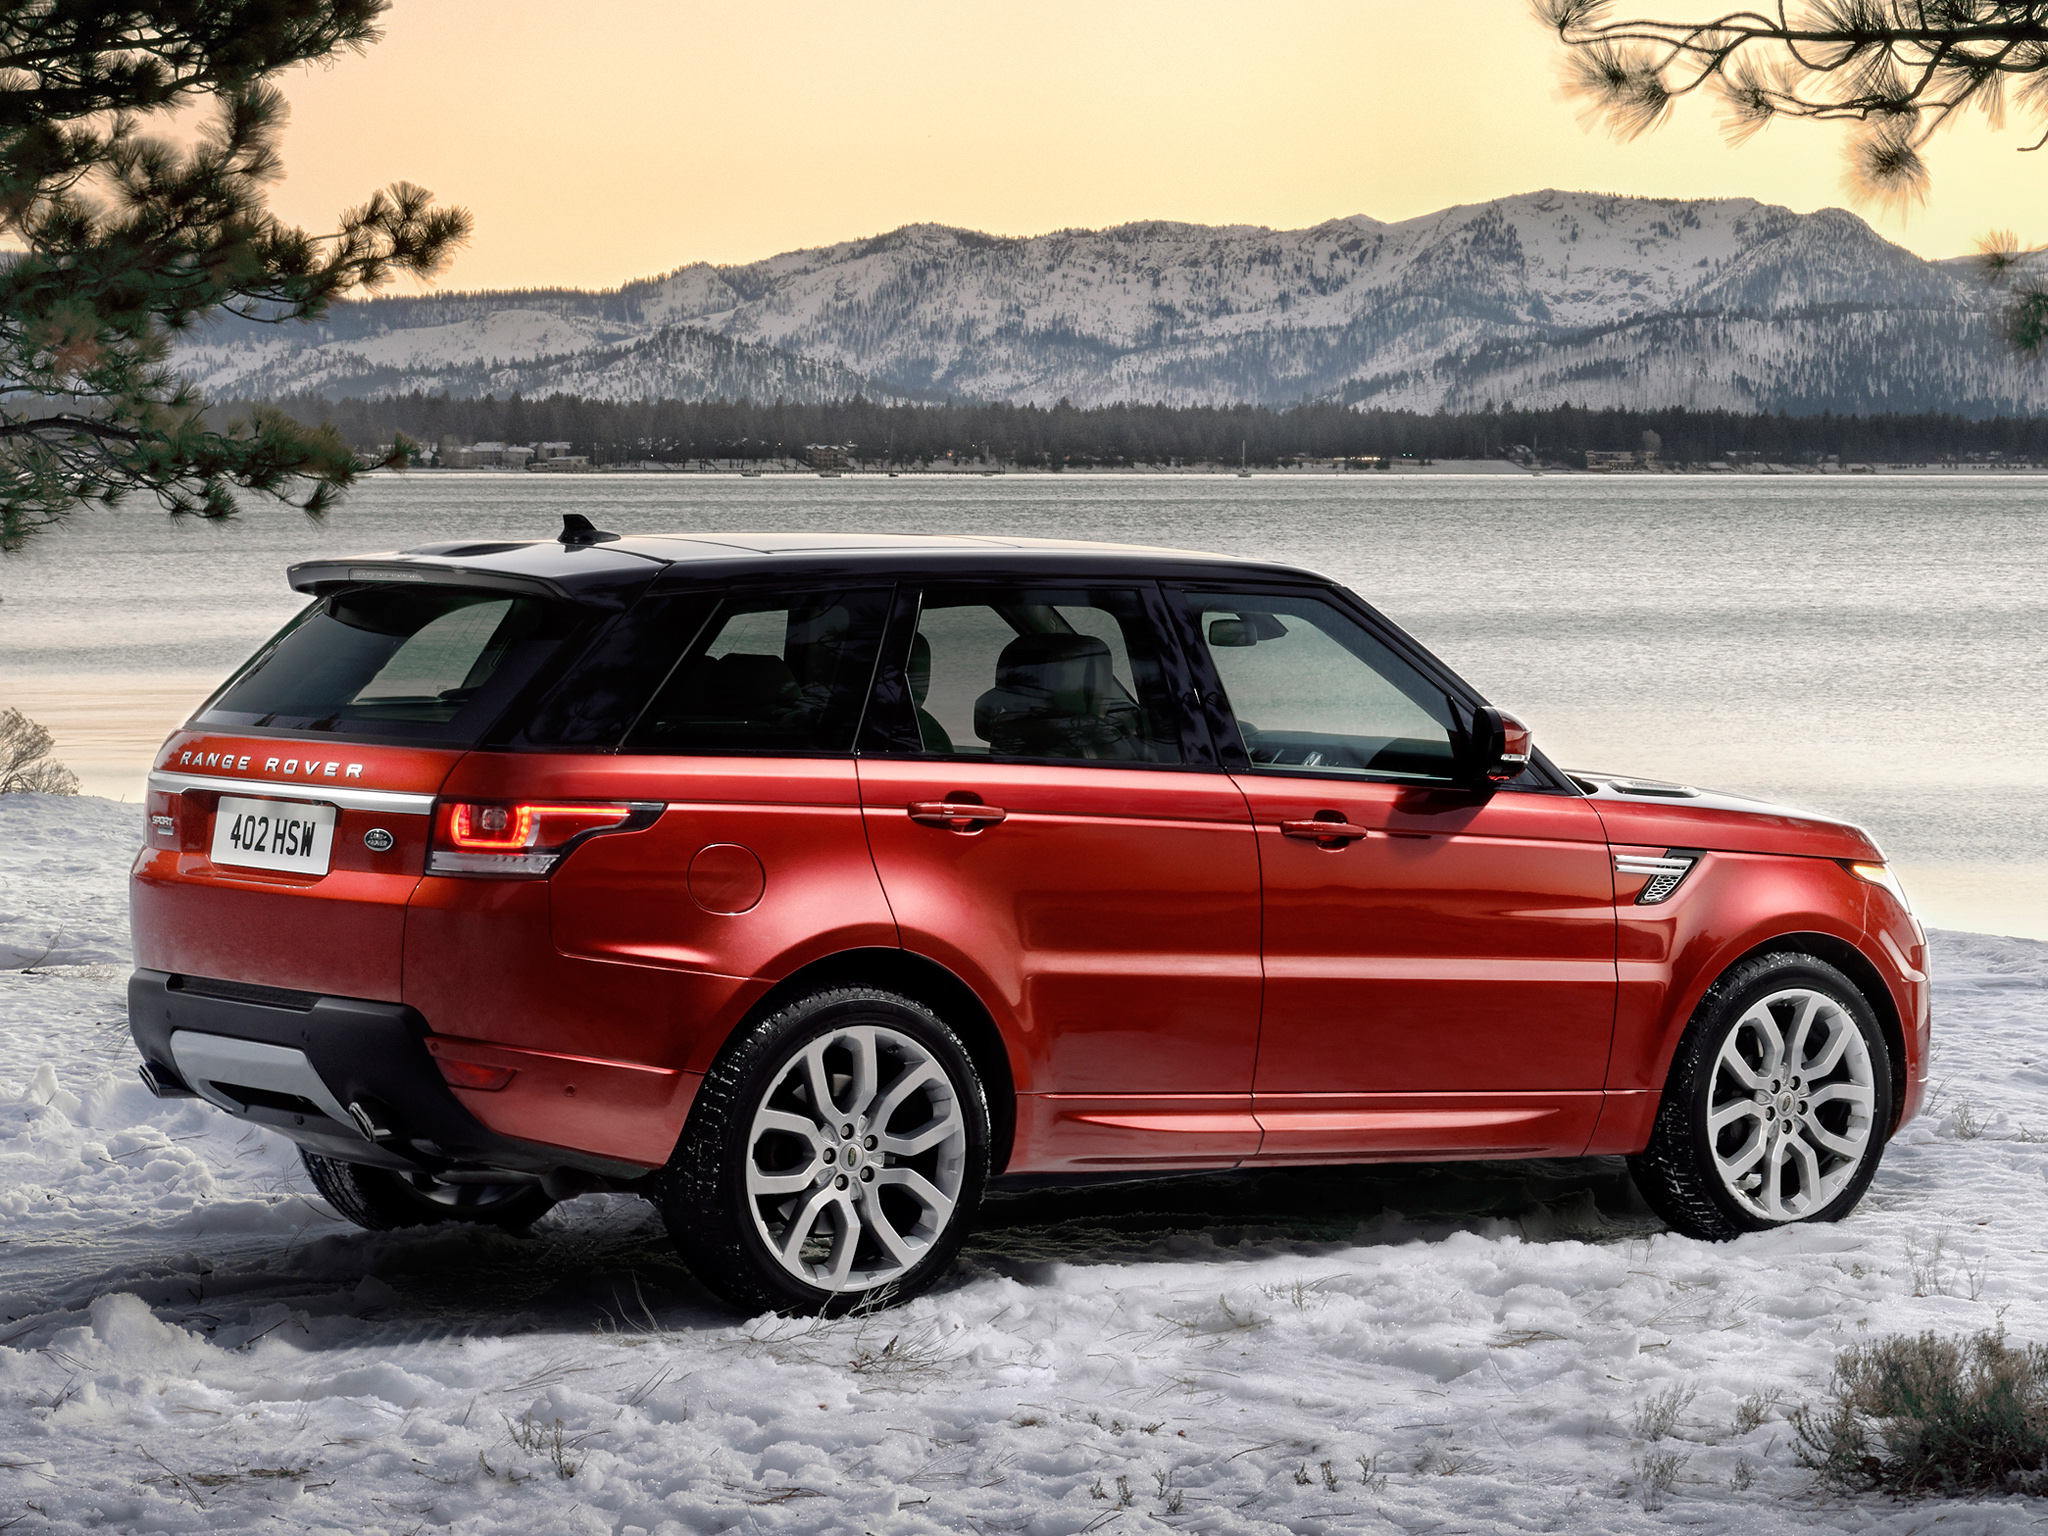 Used 2014 Land Rover Range Rover Sport For Sale  CarGurus